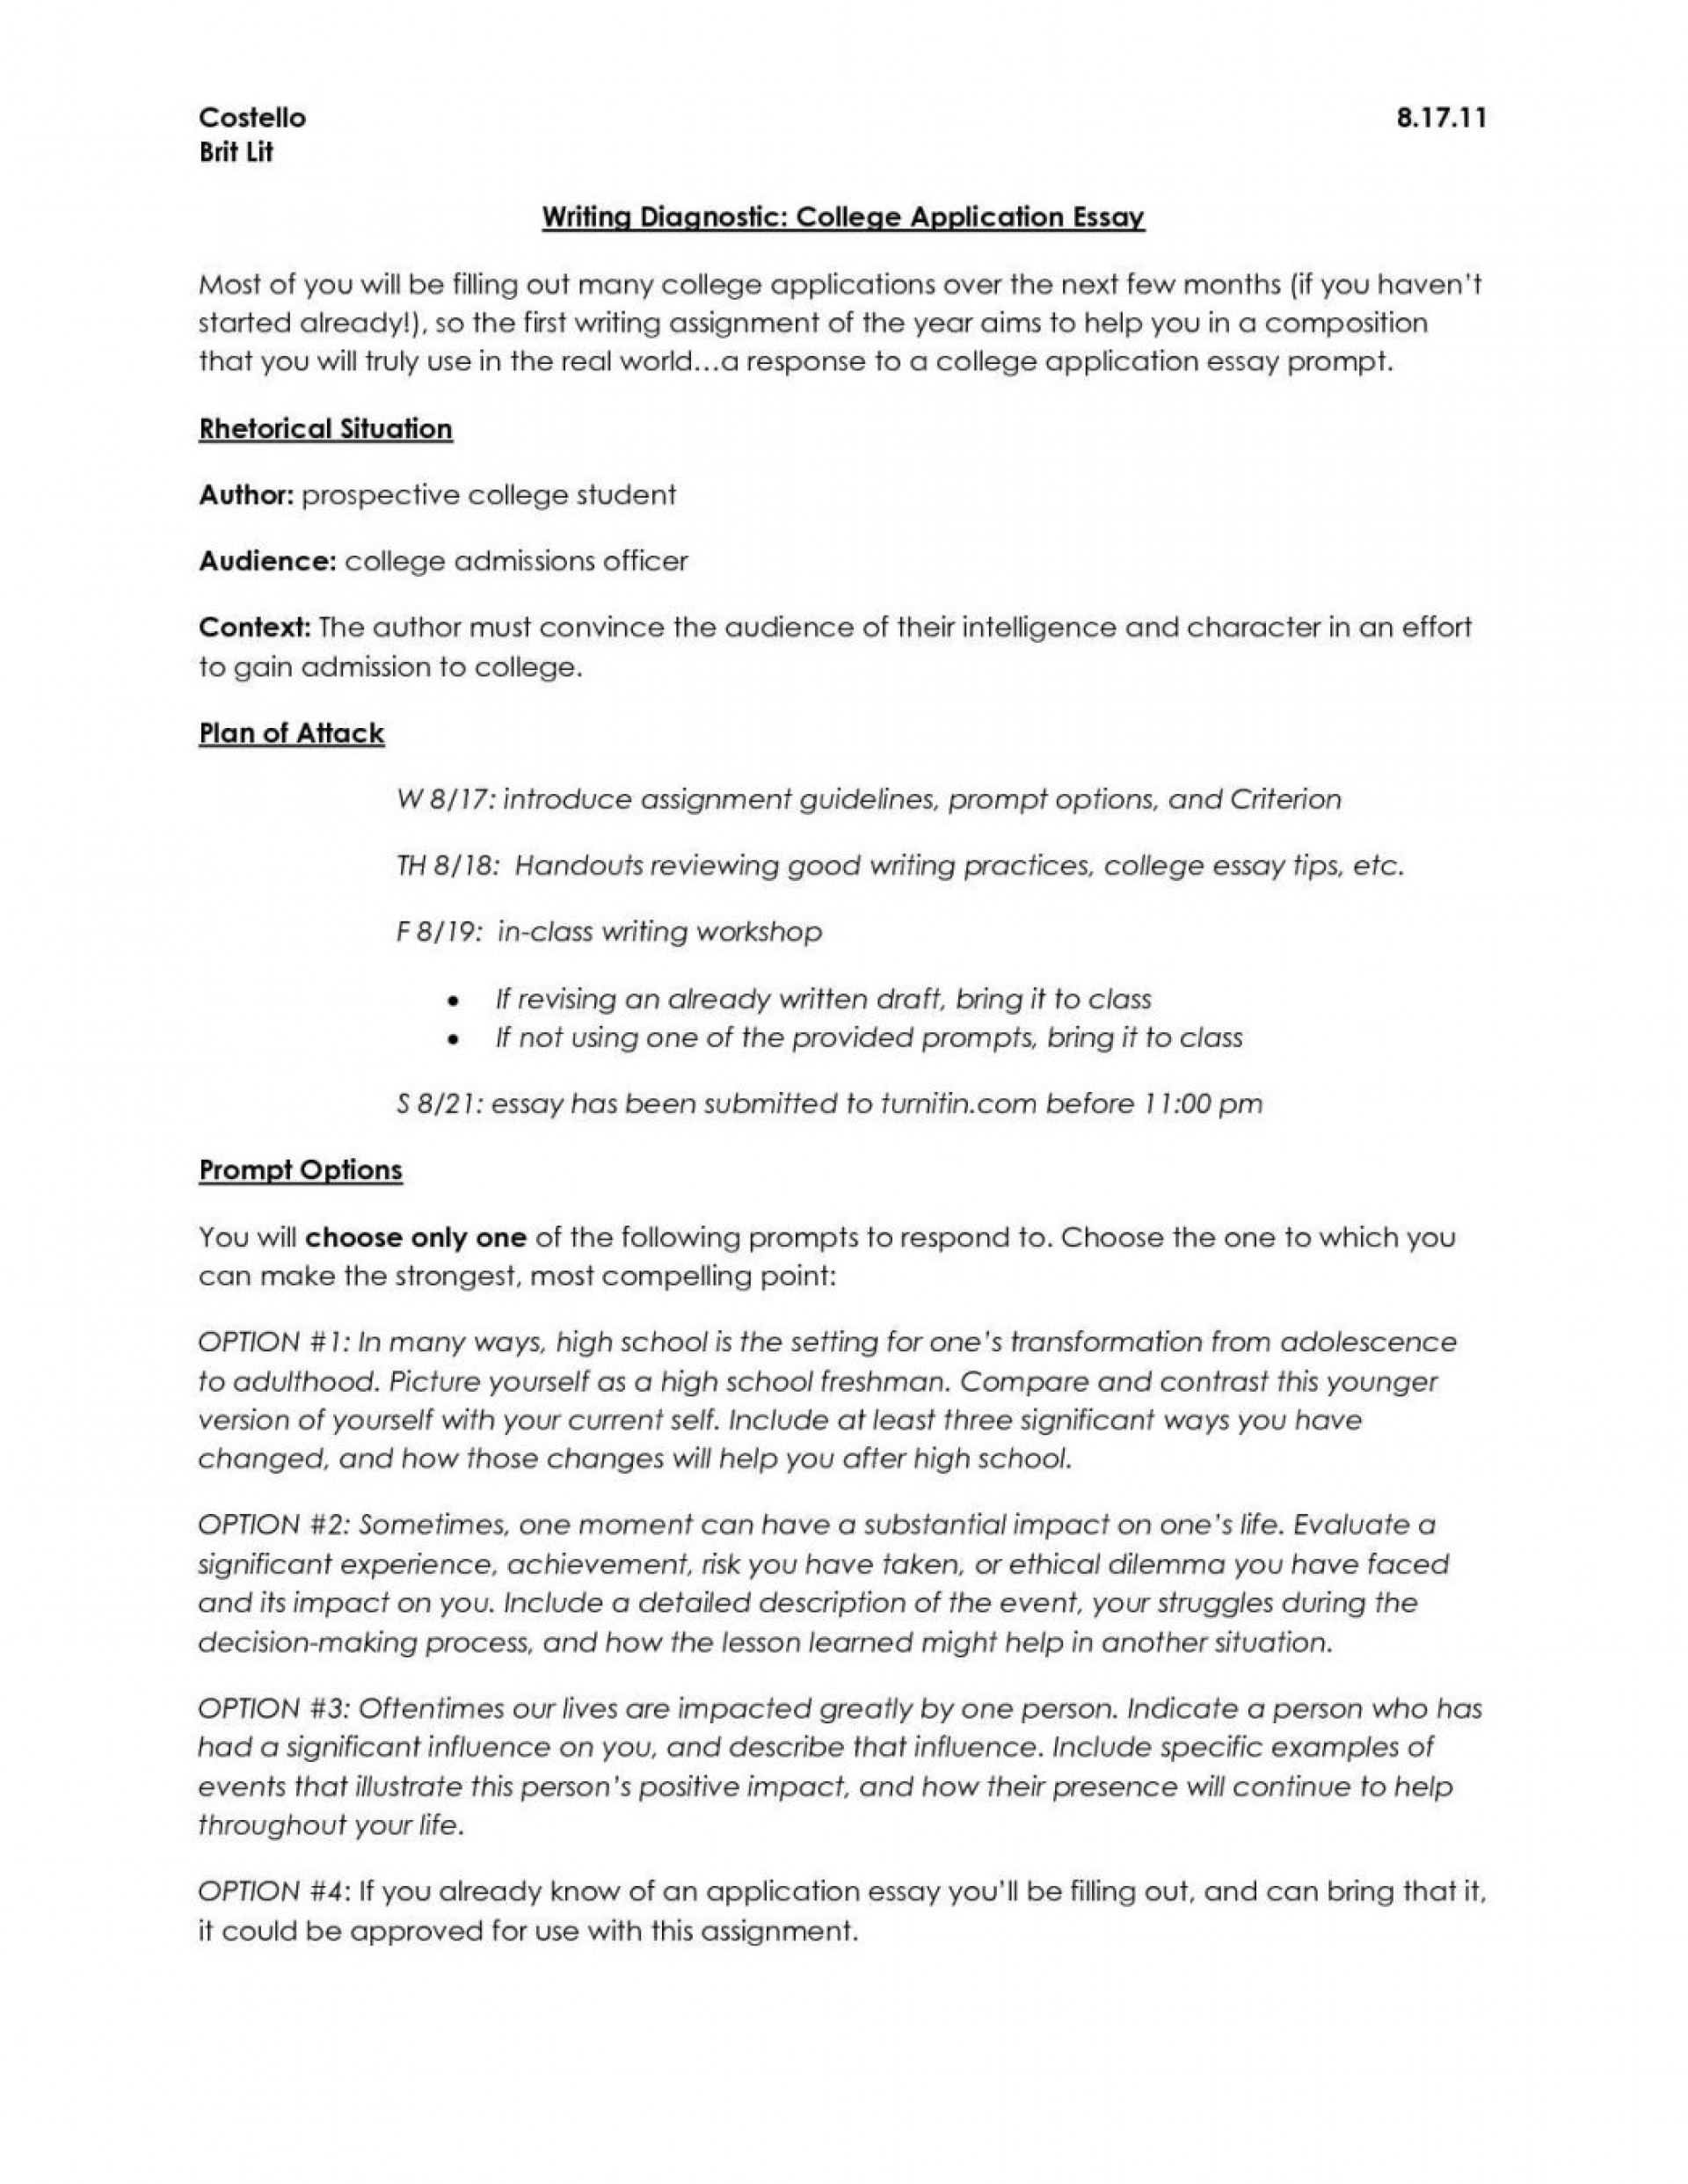 008 College Application Essay Topics Example Samples Of Essays For Admissions 626reserve Com Owhsv Question Examples Cliche Prompt To Avoid Rutgers Dreaded Admission Prompts 2016 Applications 1920